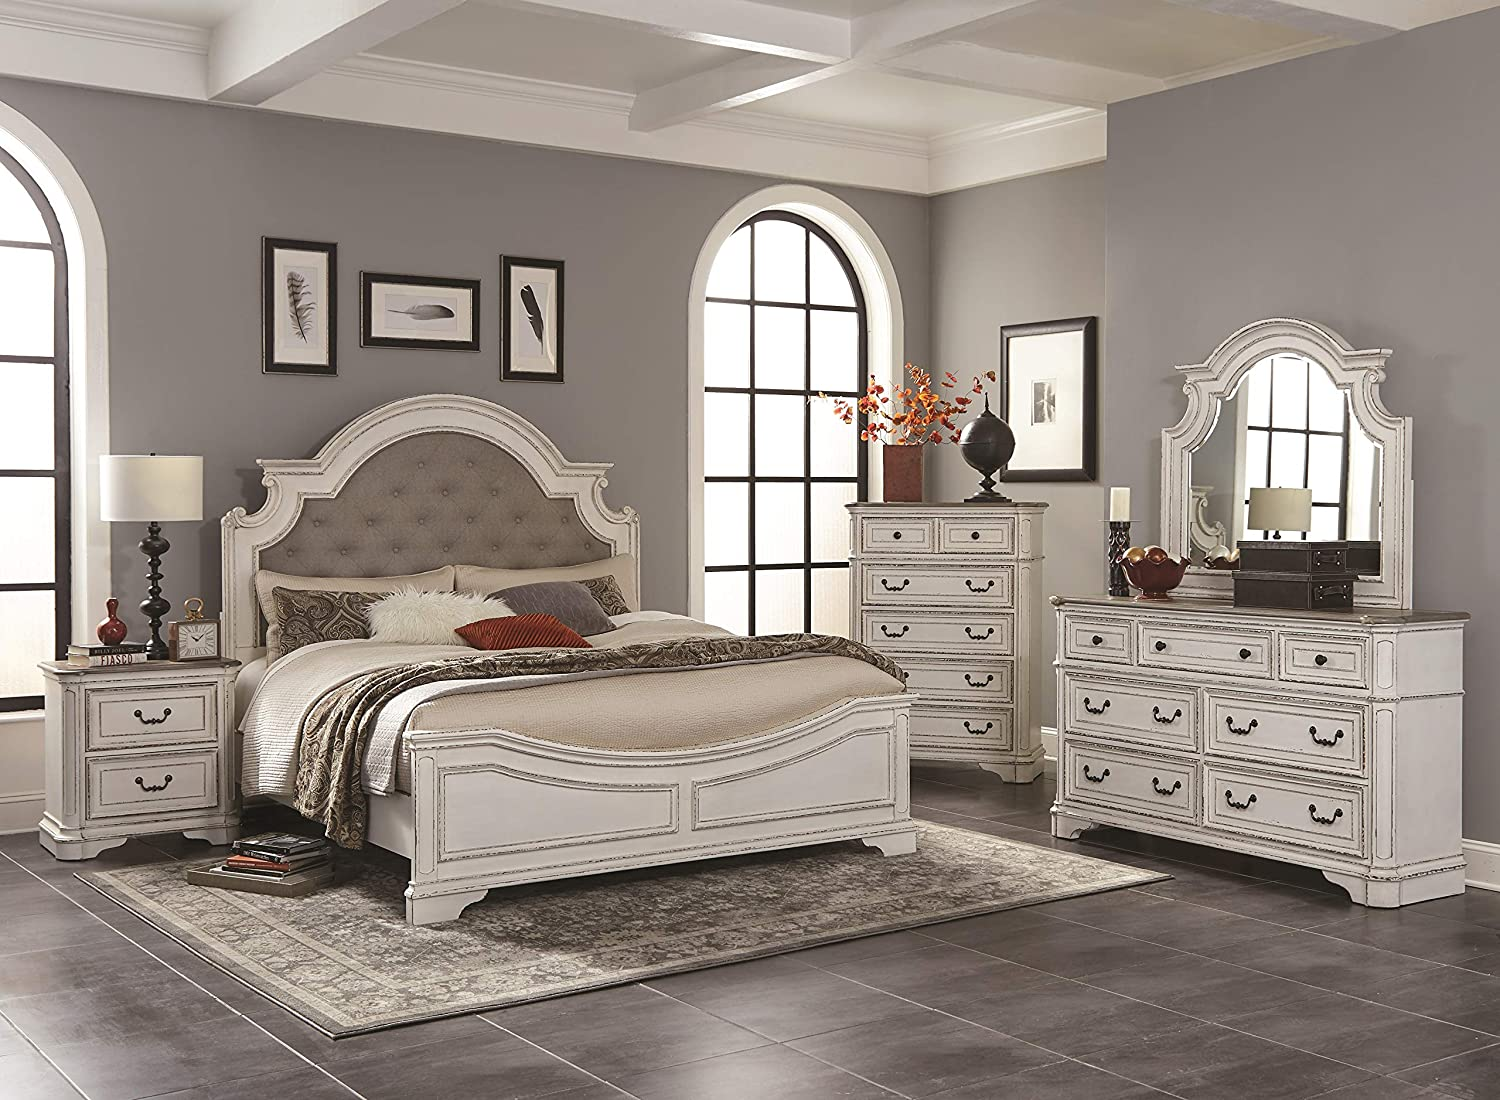 Roundhill Furniture Laval Wood Bedroom Set, Upholstered Queen Bed, Dresser, Mirror, One Nightstand, Chest, Antique White and Oak